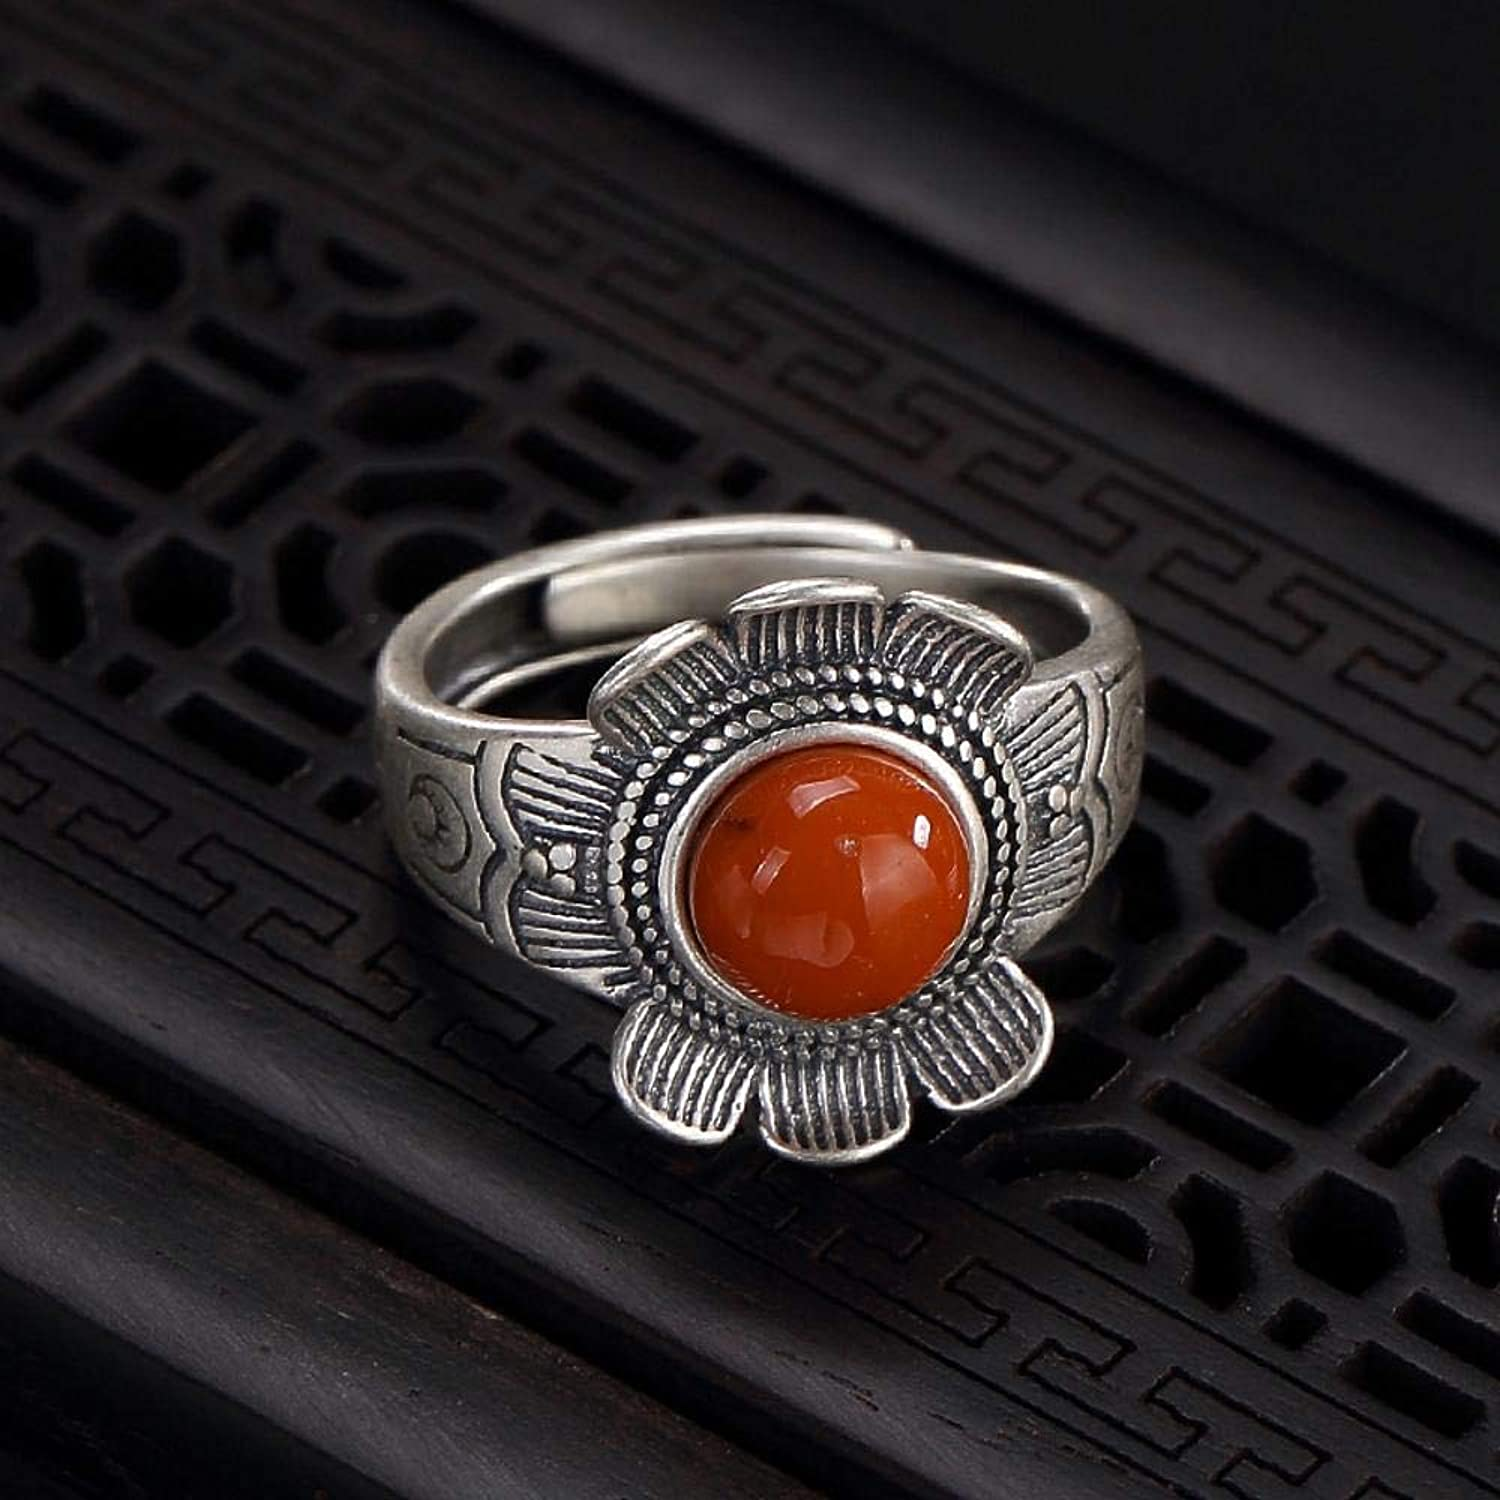 DTZH Rings Jewellery Ring S925 Sterling Silver Inlaid red Agate Retro Matte Female Sun Flower Ring Give it to Dear People